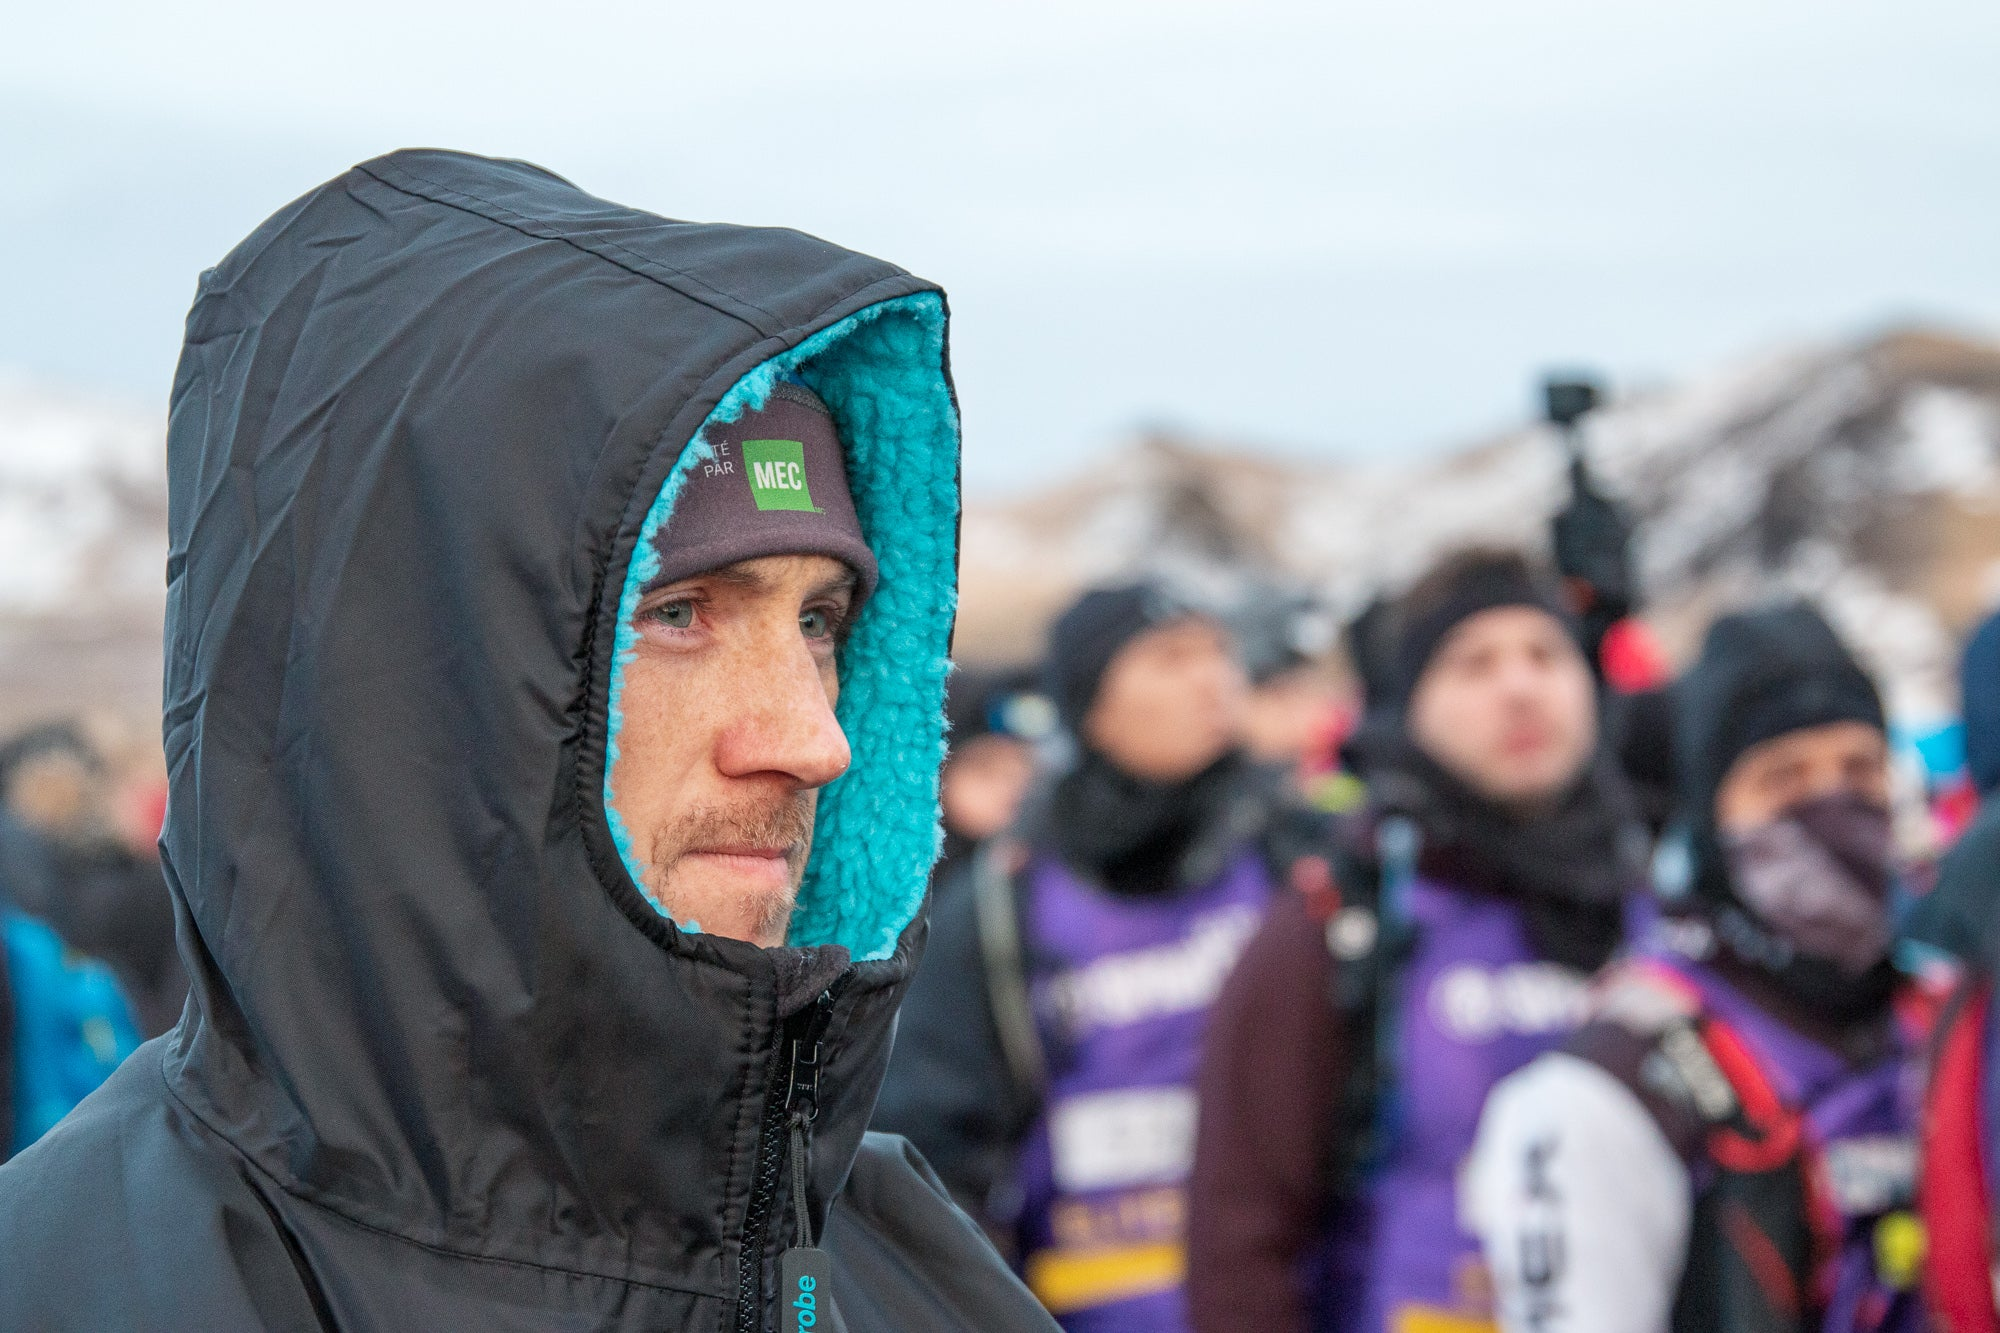 Jon Albon staying warm in his dryrobe pre-race